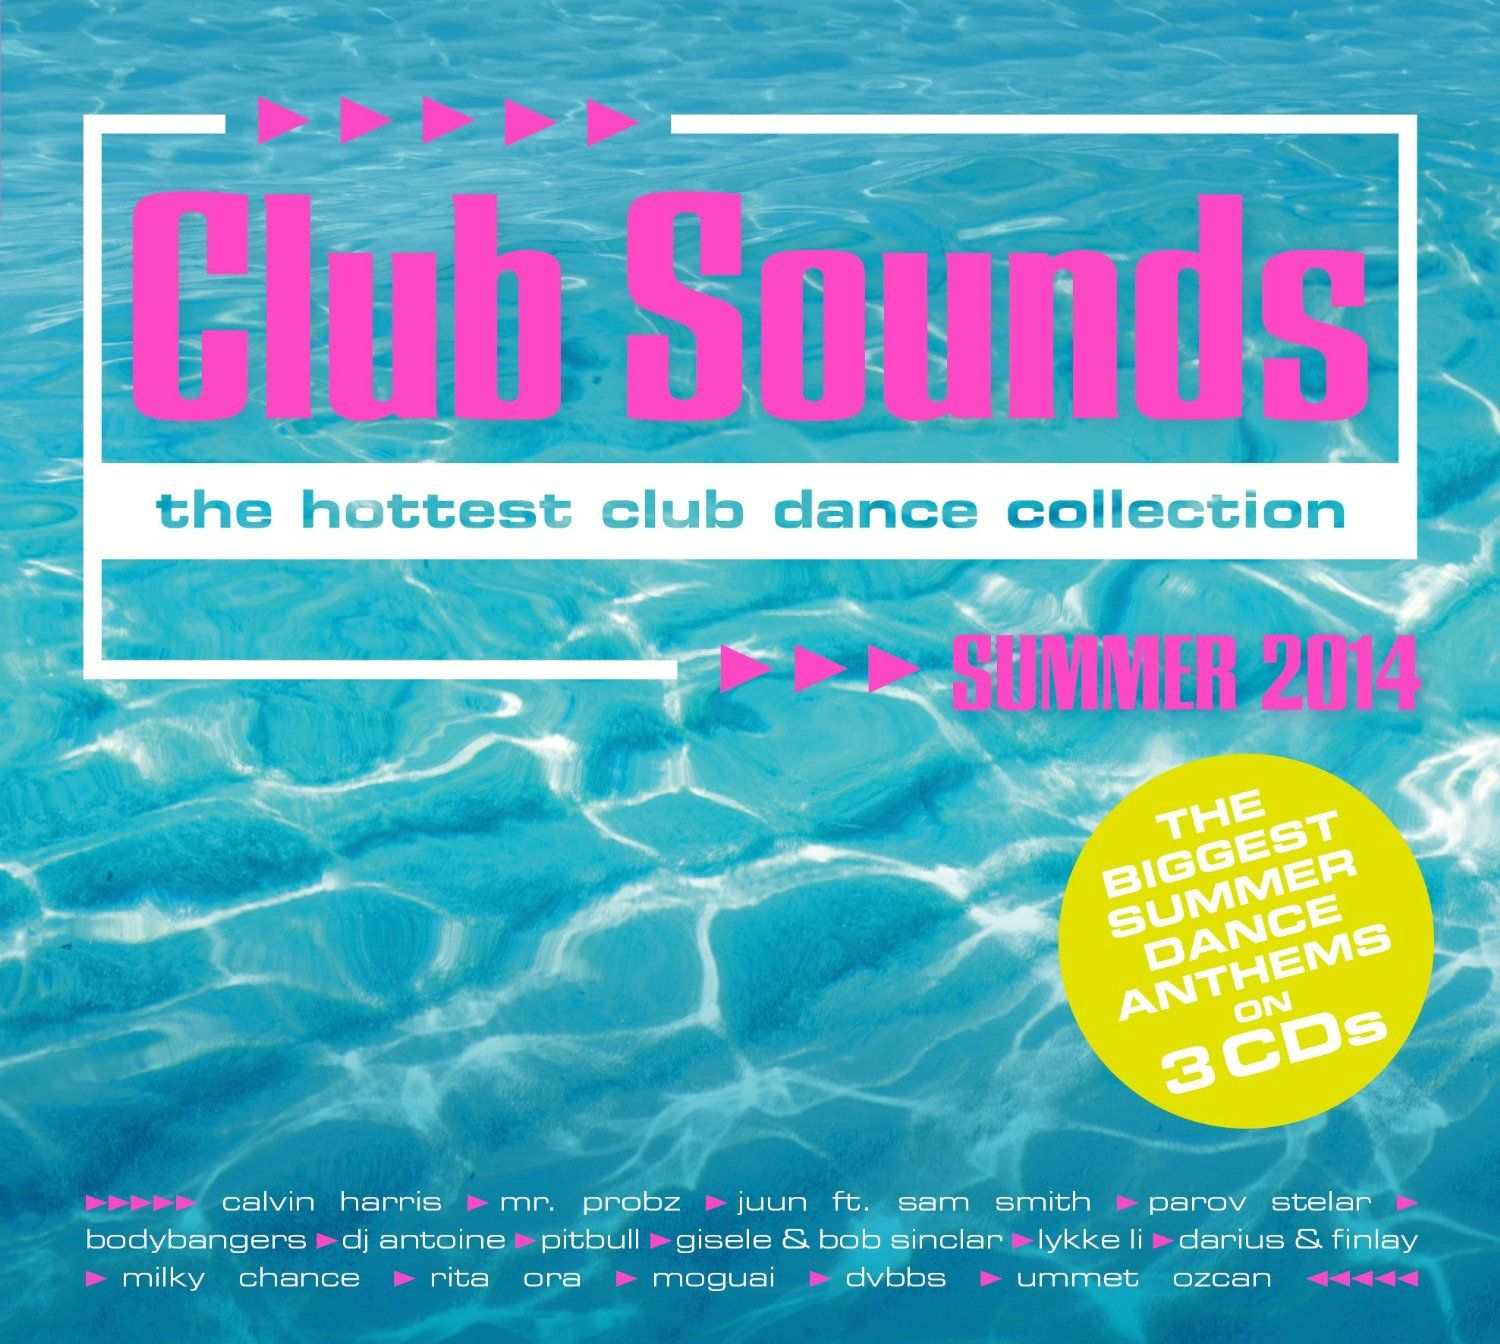 Club sounds musik trance music milky chance